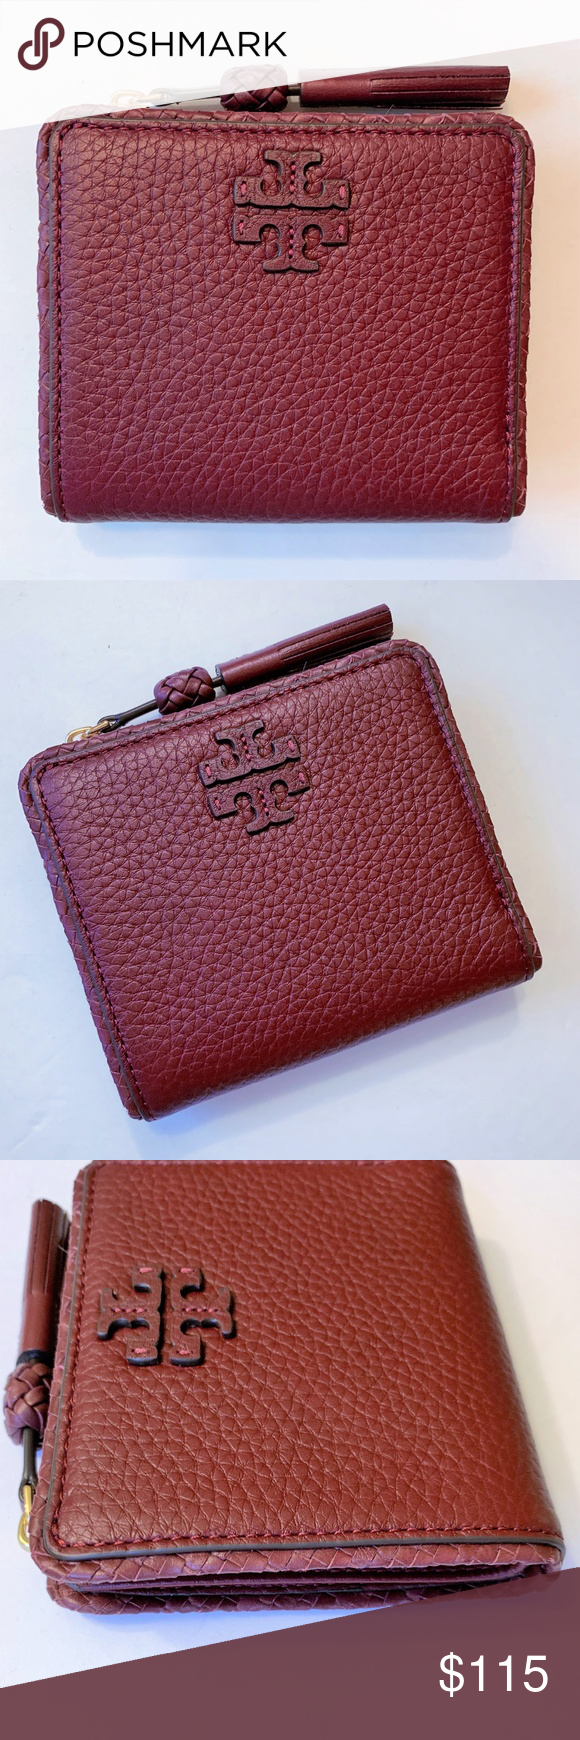 46d392aa577 TORY BURCH Taylor Mini Wallet ~ Leather Tassel Taylor Mini Wallet by Tory  Burch in Imperial